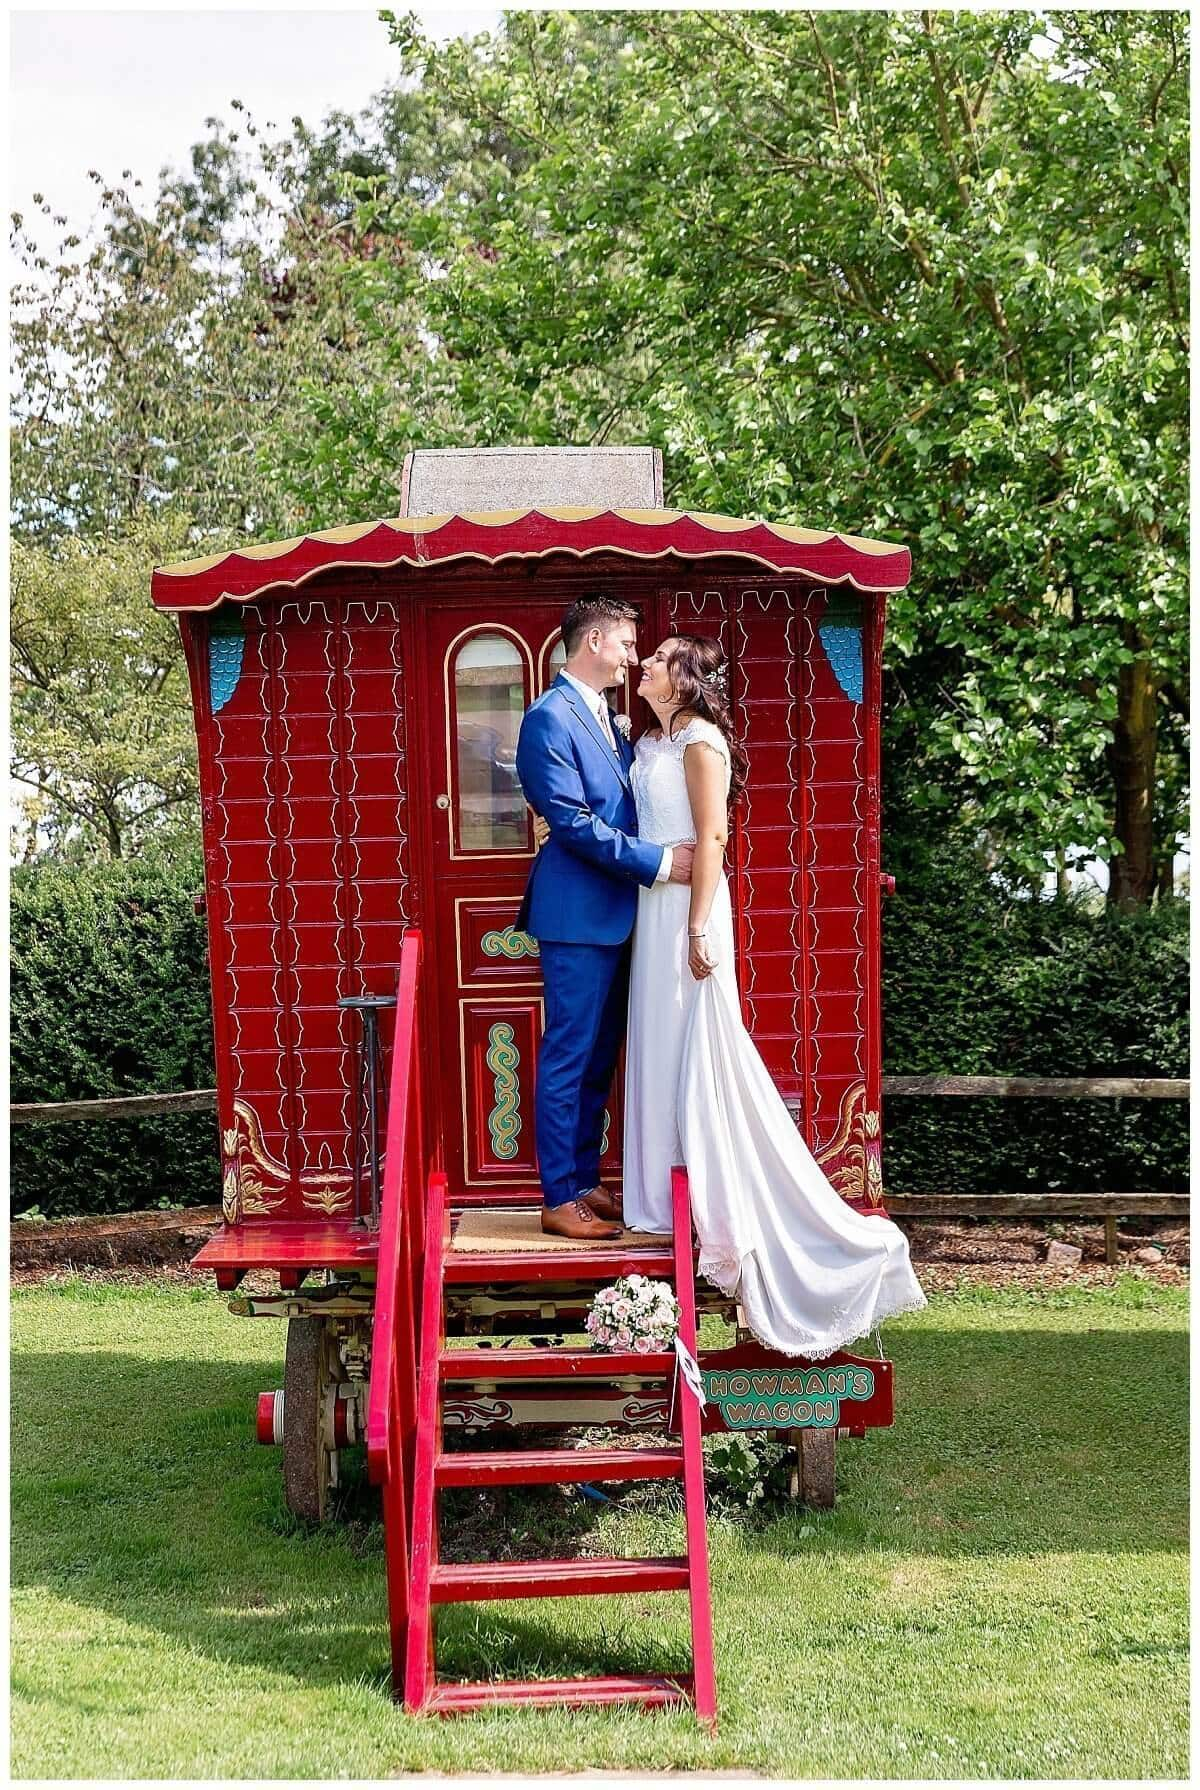 Bride & Groom on Gypsy Caravan at South Farm